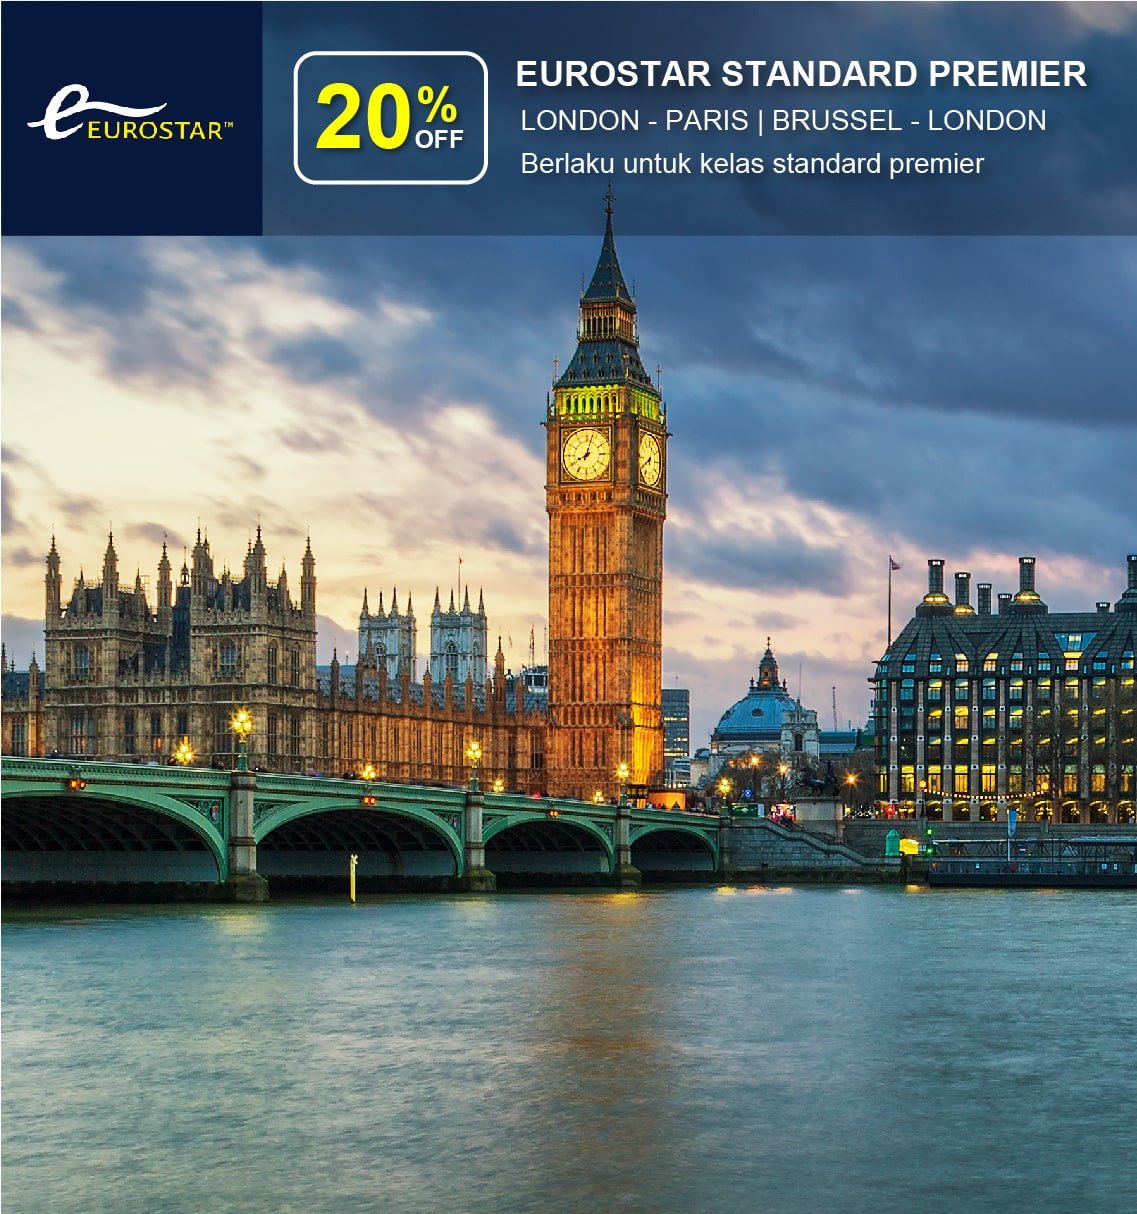 Eurostar Early Bird Promotion